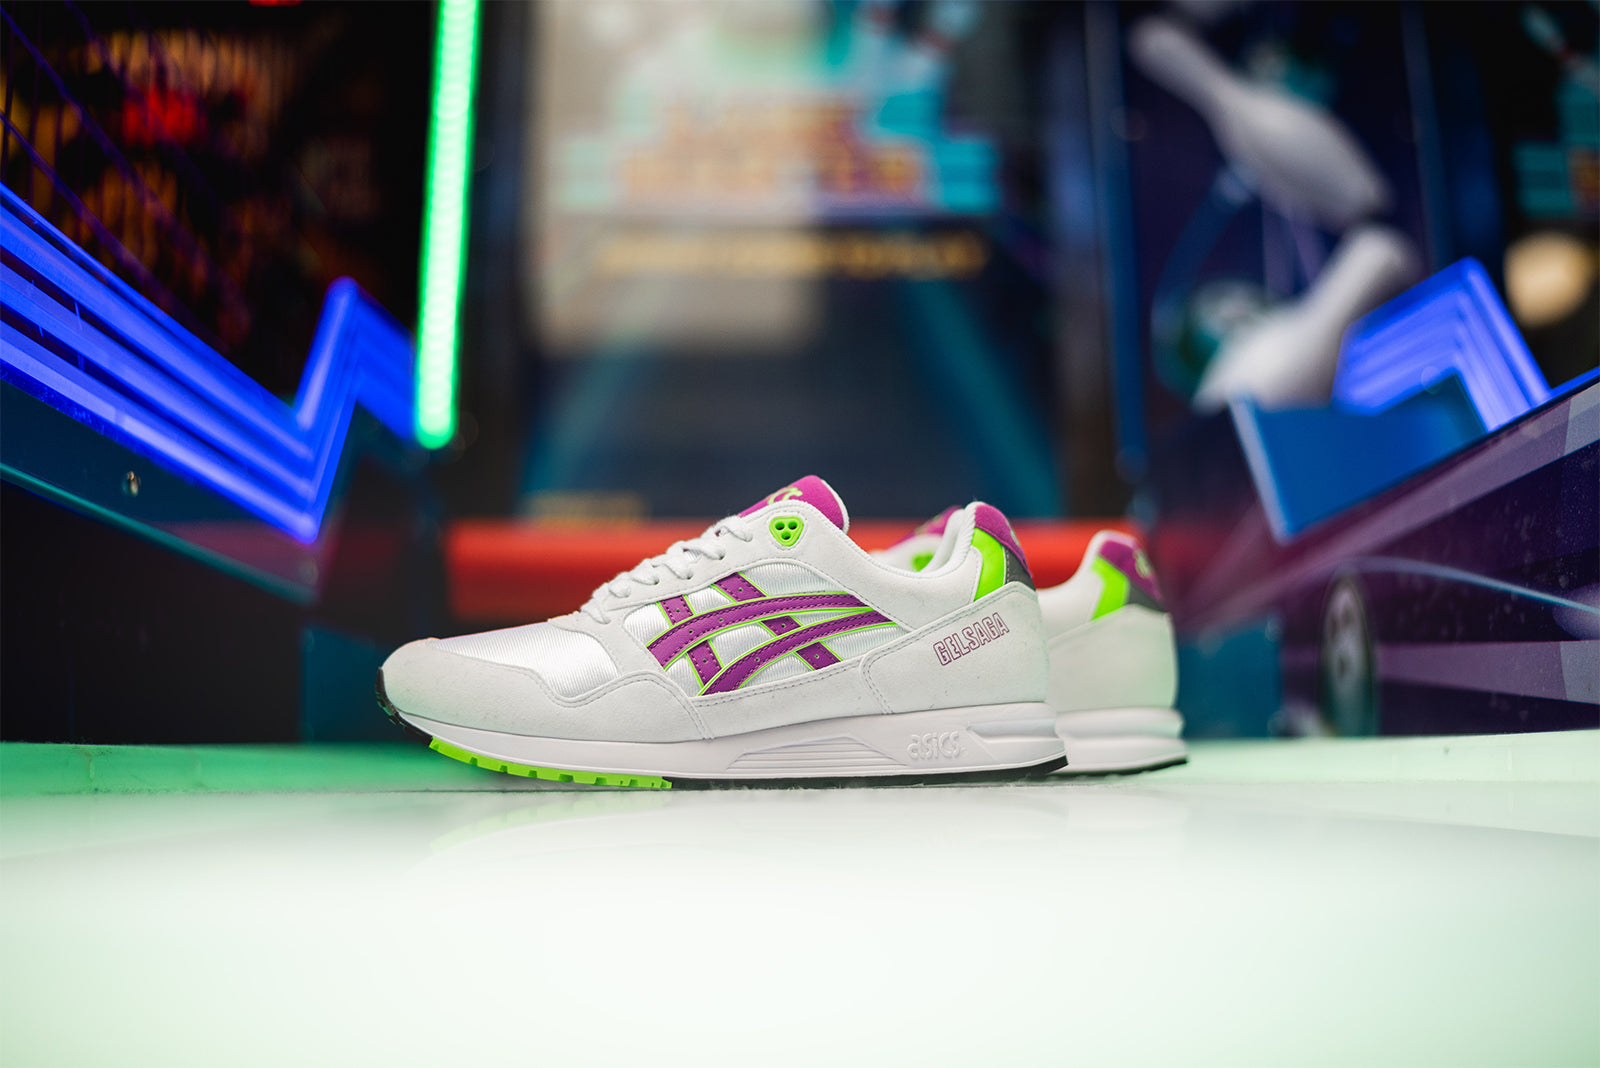 d09d54390ad4 WHITE ASICS BLUE Price  £89.00. Available to buy online now